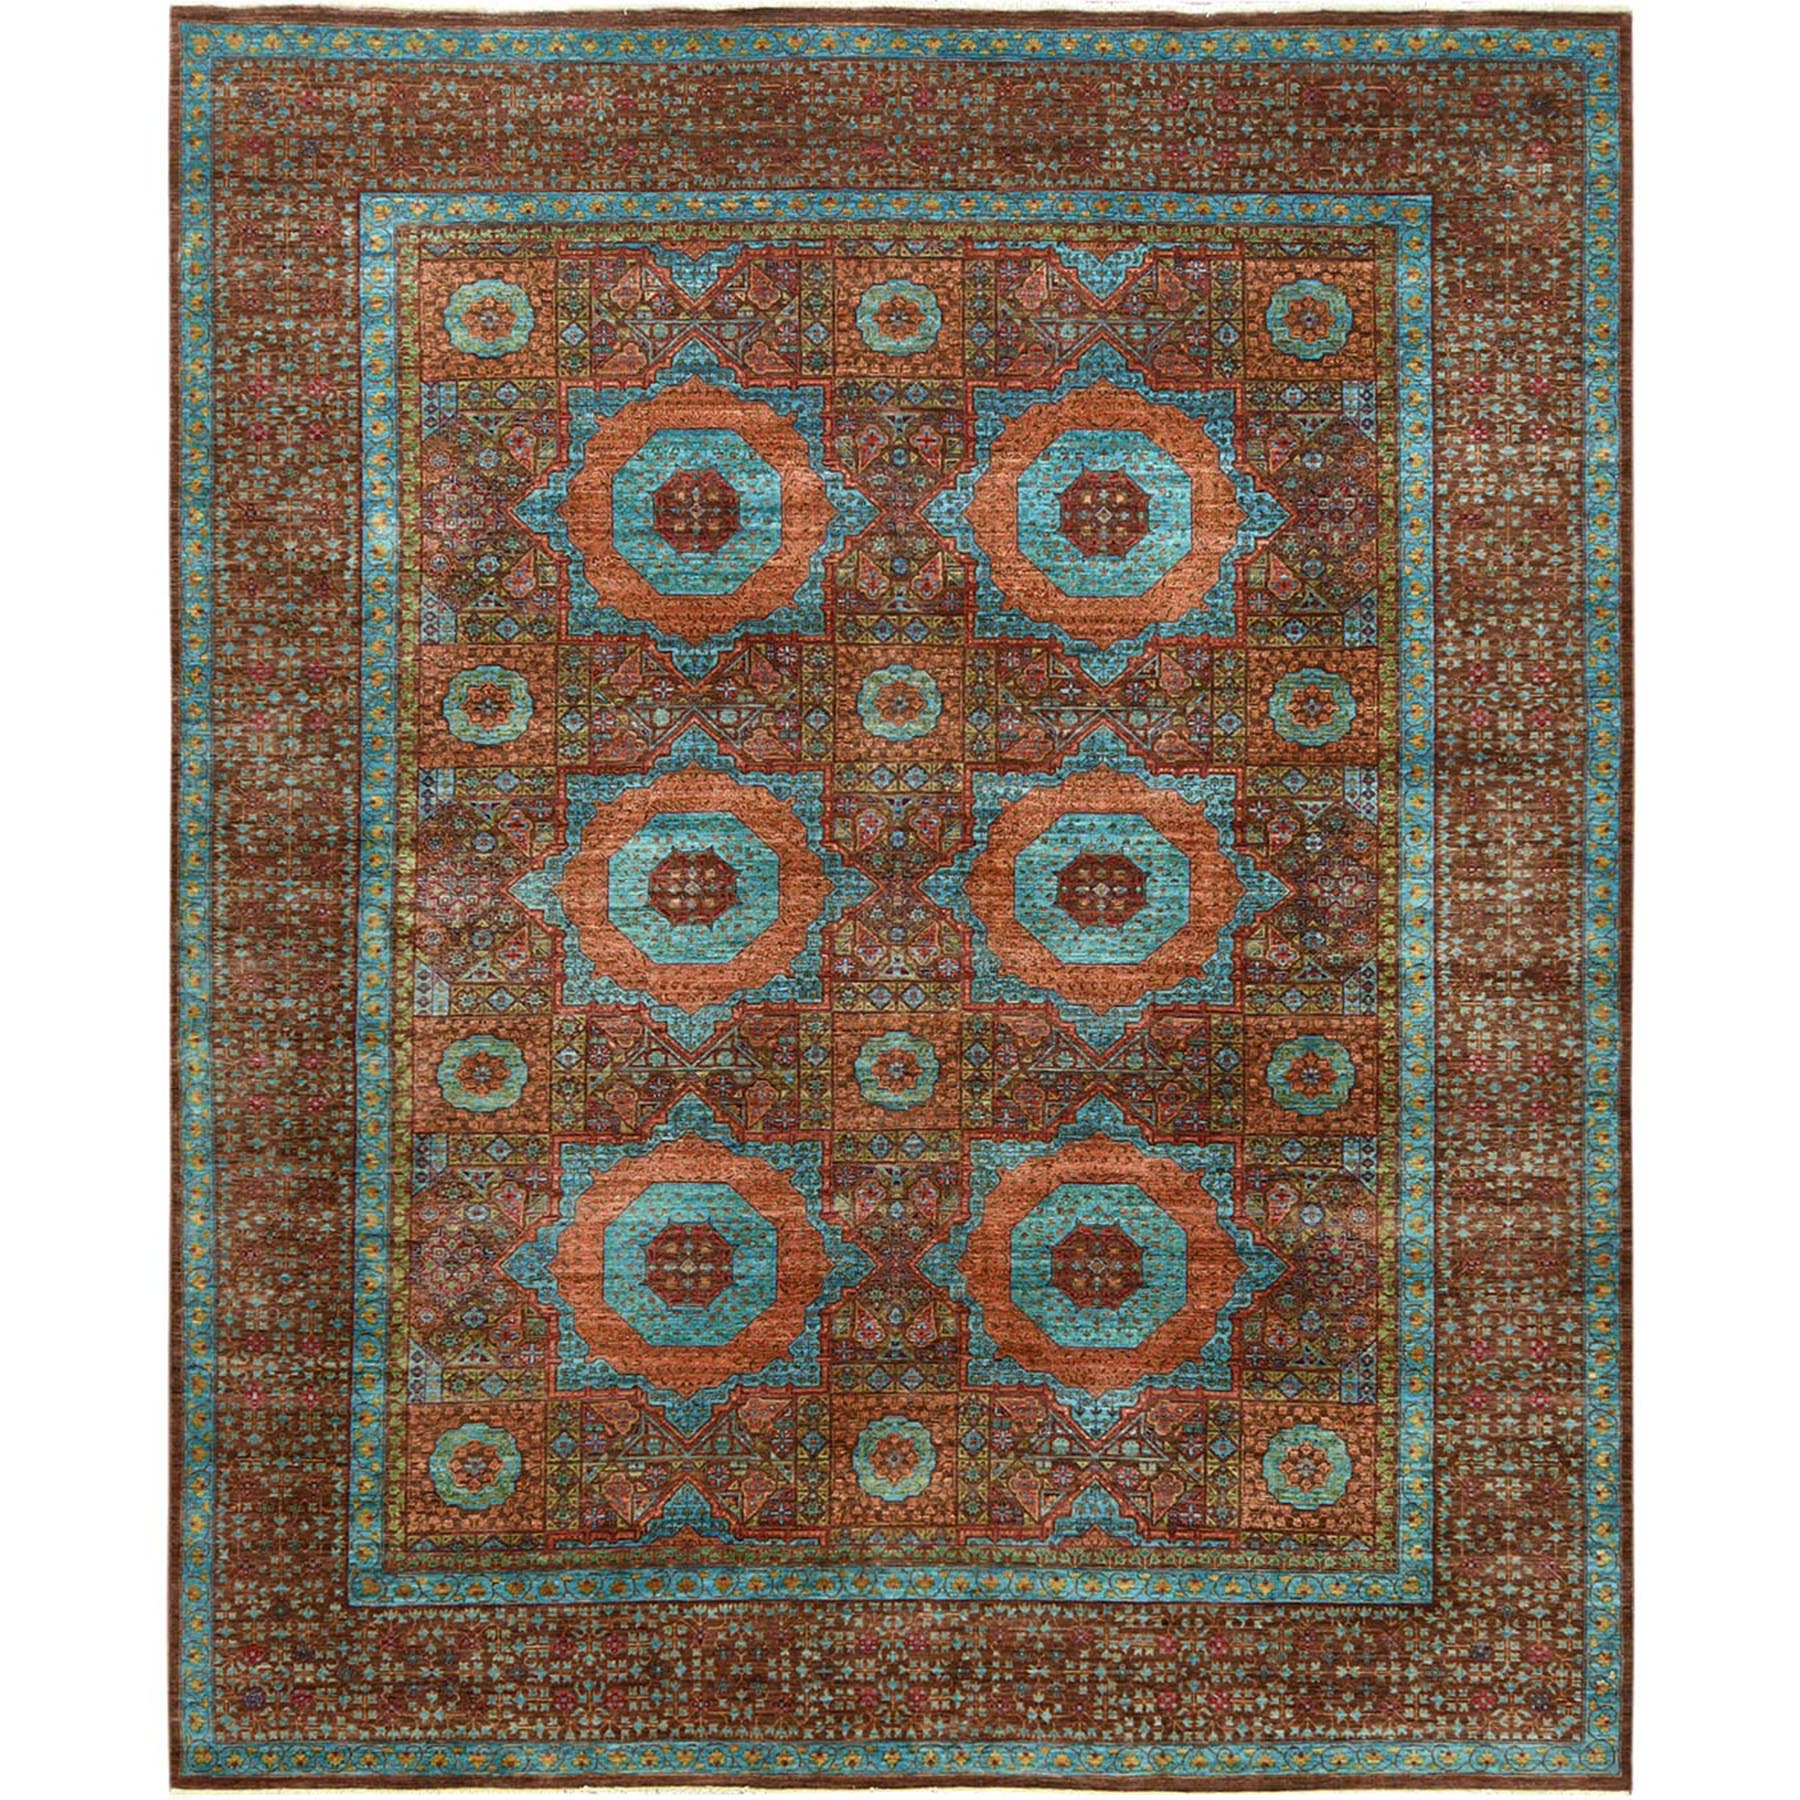 "9'x11'4"" Brown Super Fine Peshawar Mamluk Design With Denser Weave Shiny Wool Even Pile Hand Knotted Oriental Rug"